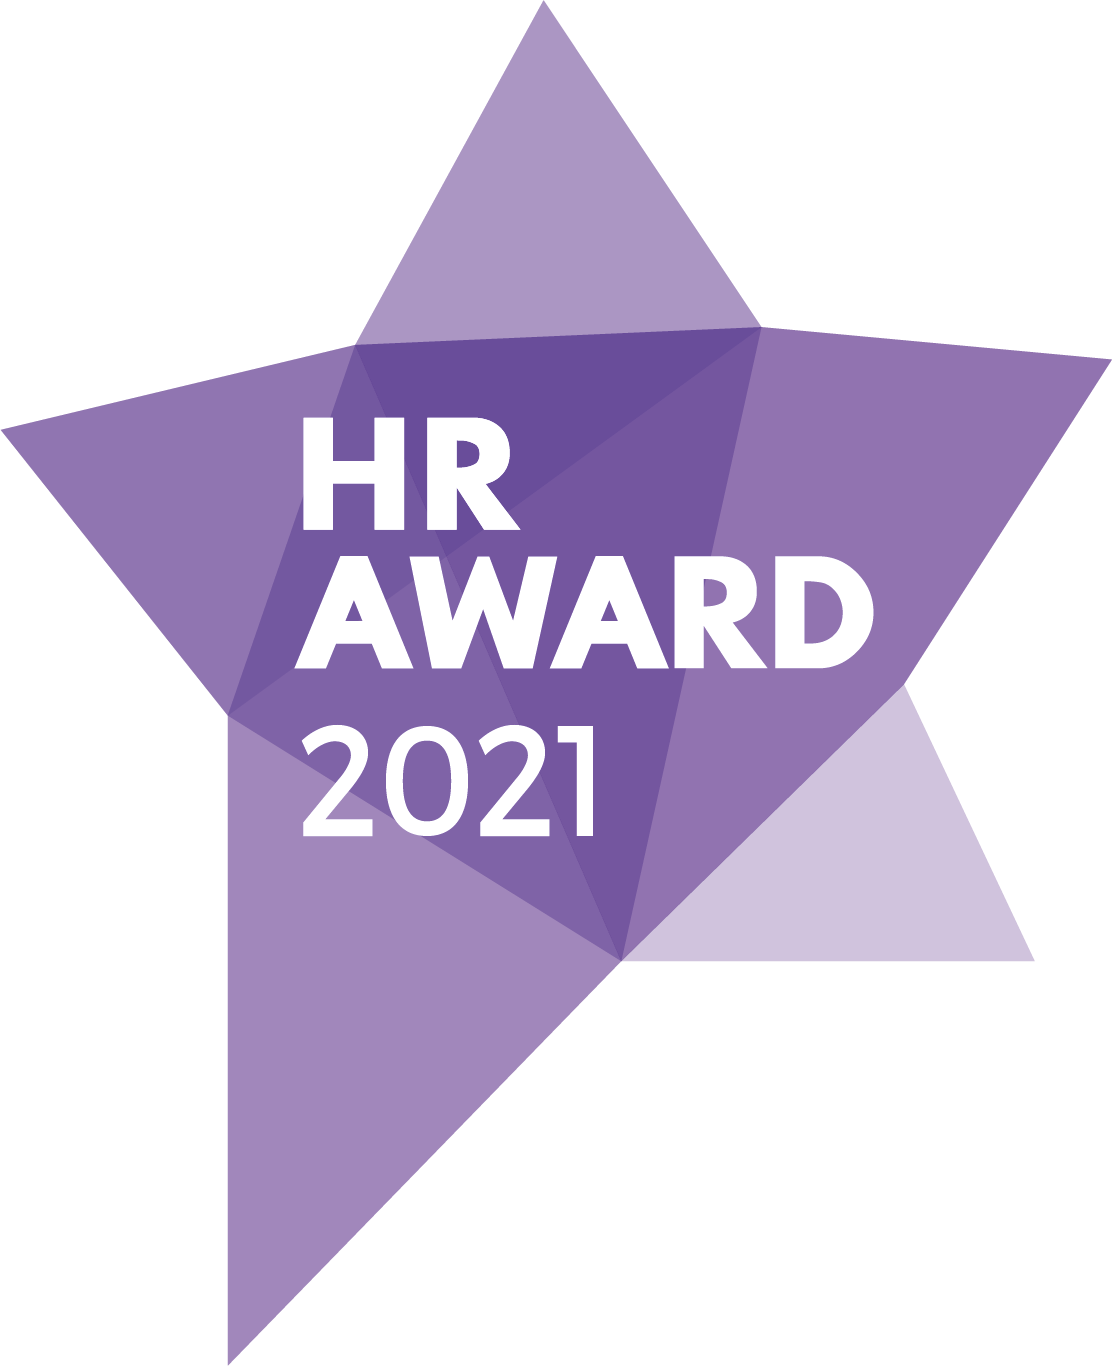 HR AWARD 2021 Logo